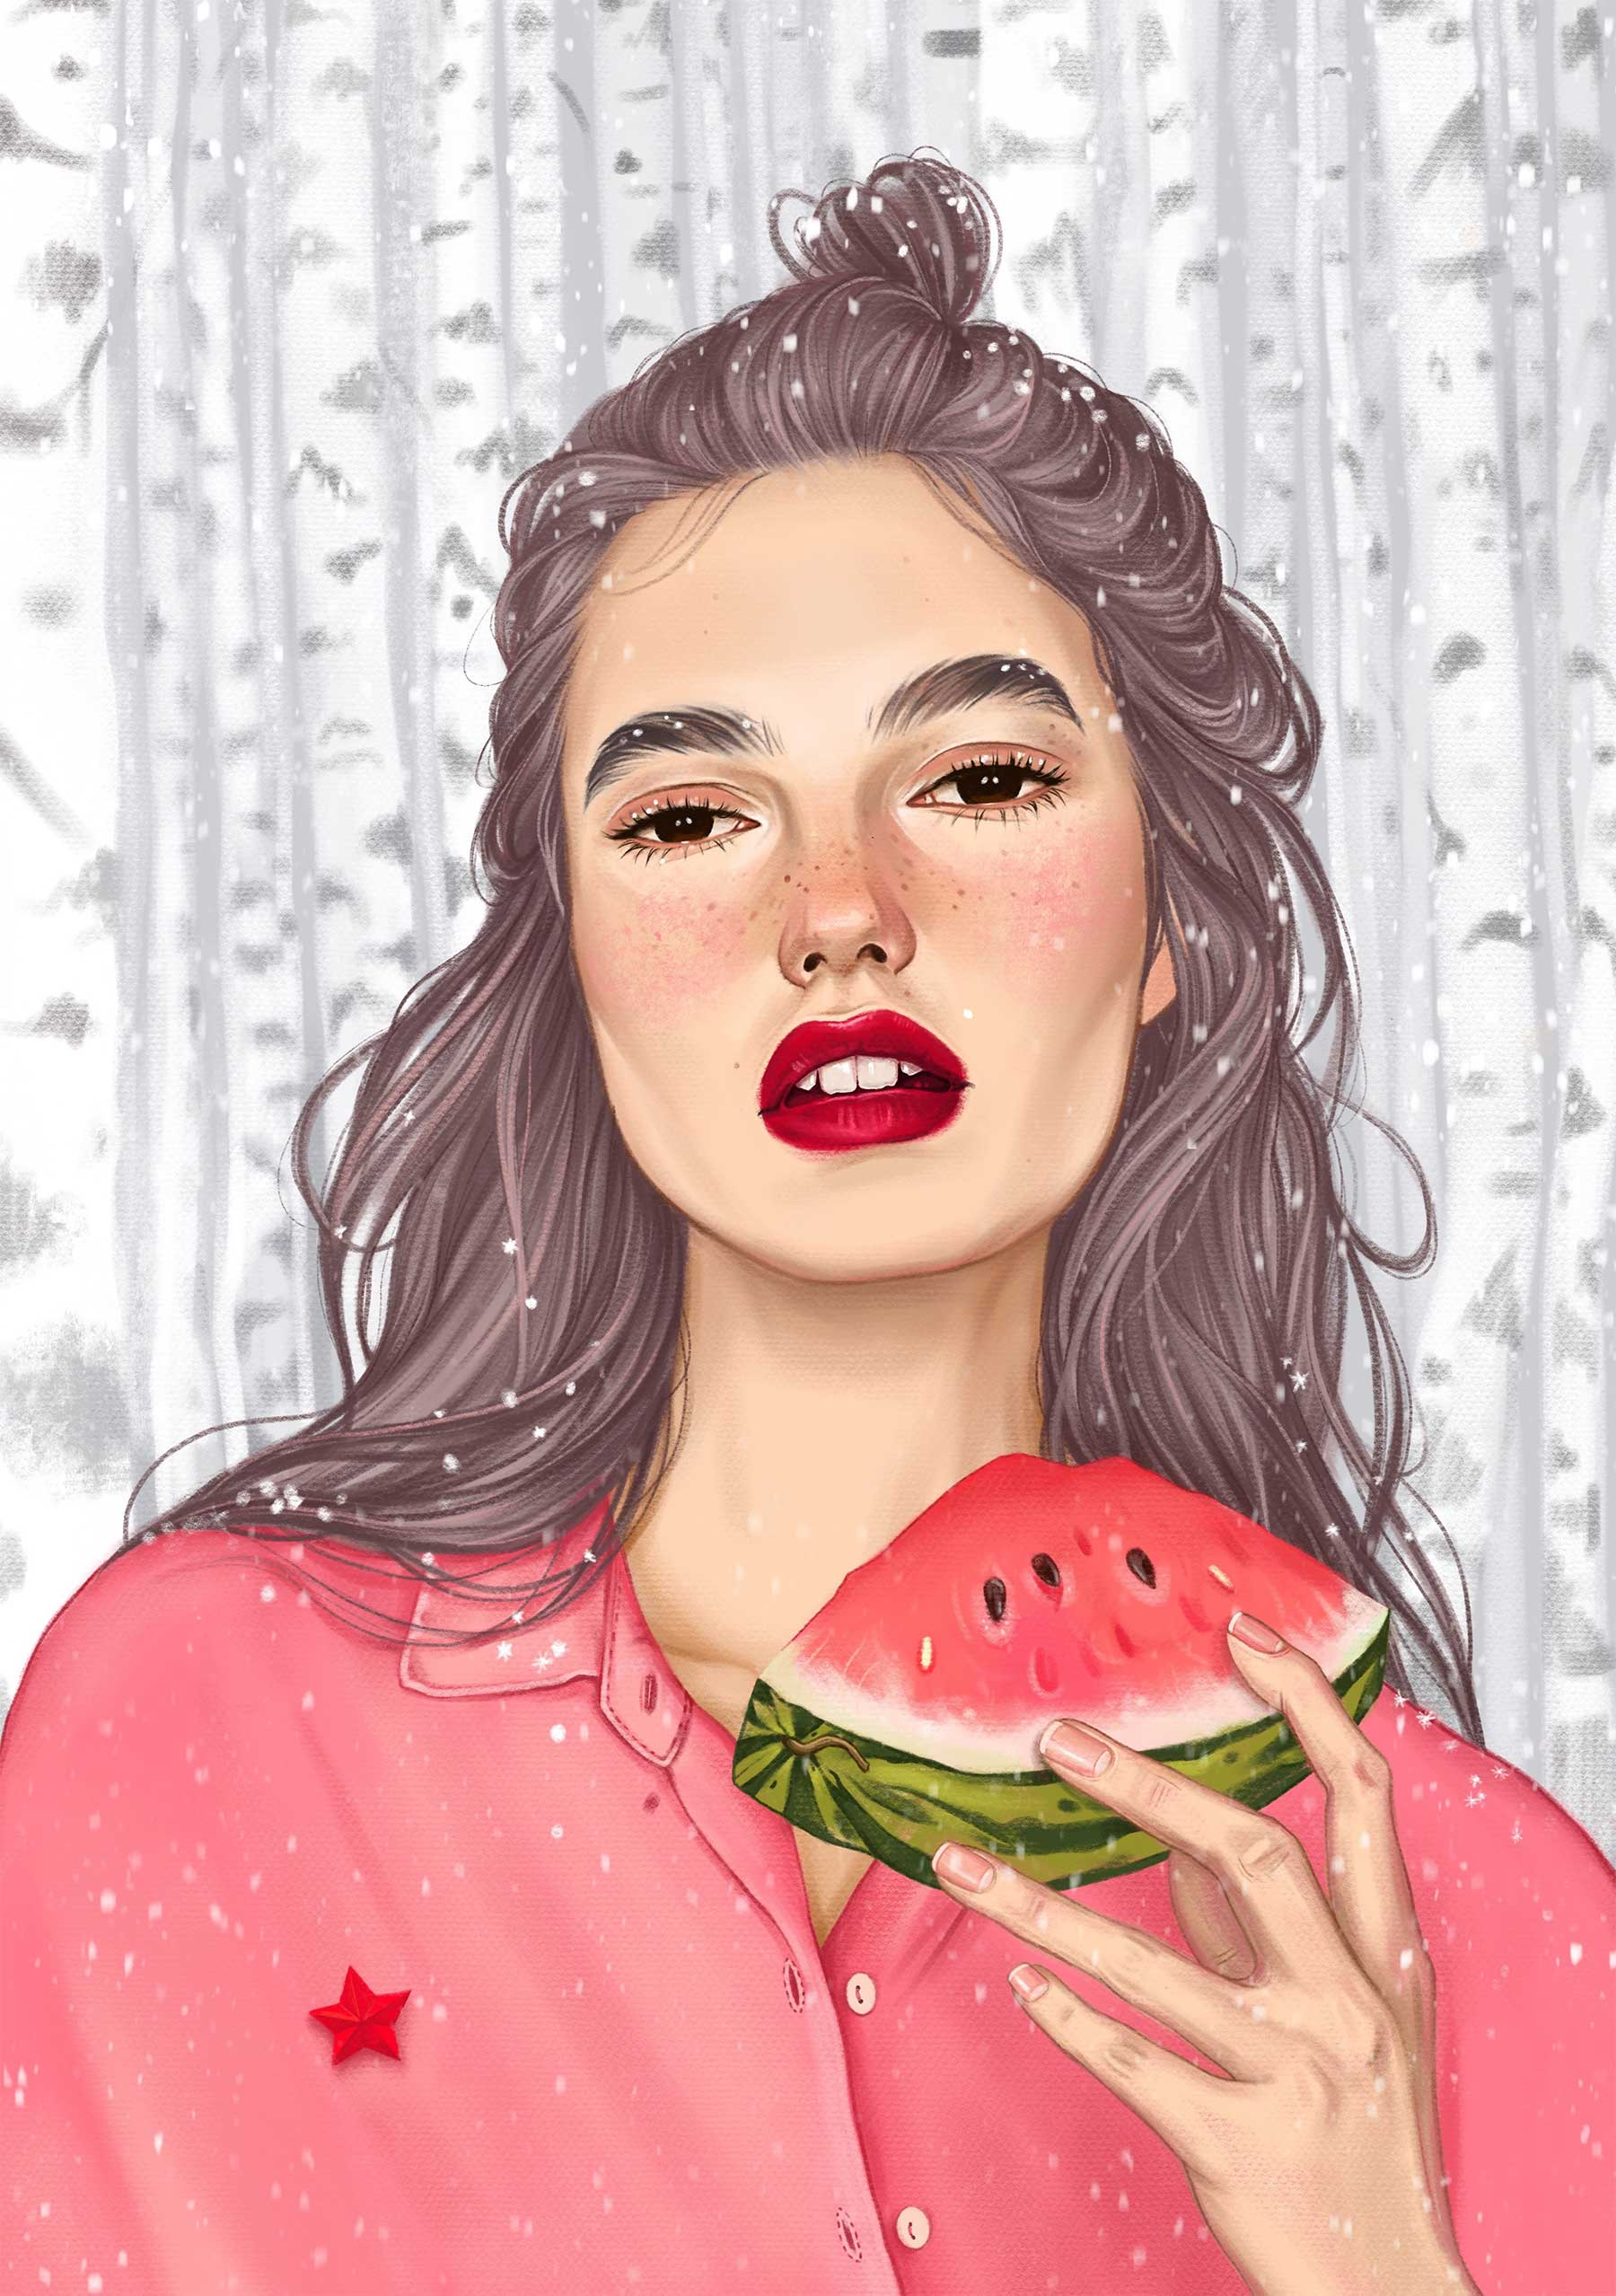 Illustration: Karina Yashagina